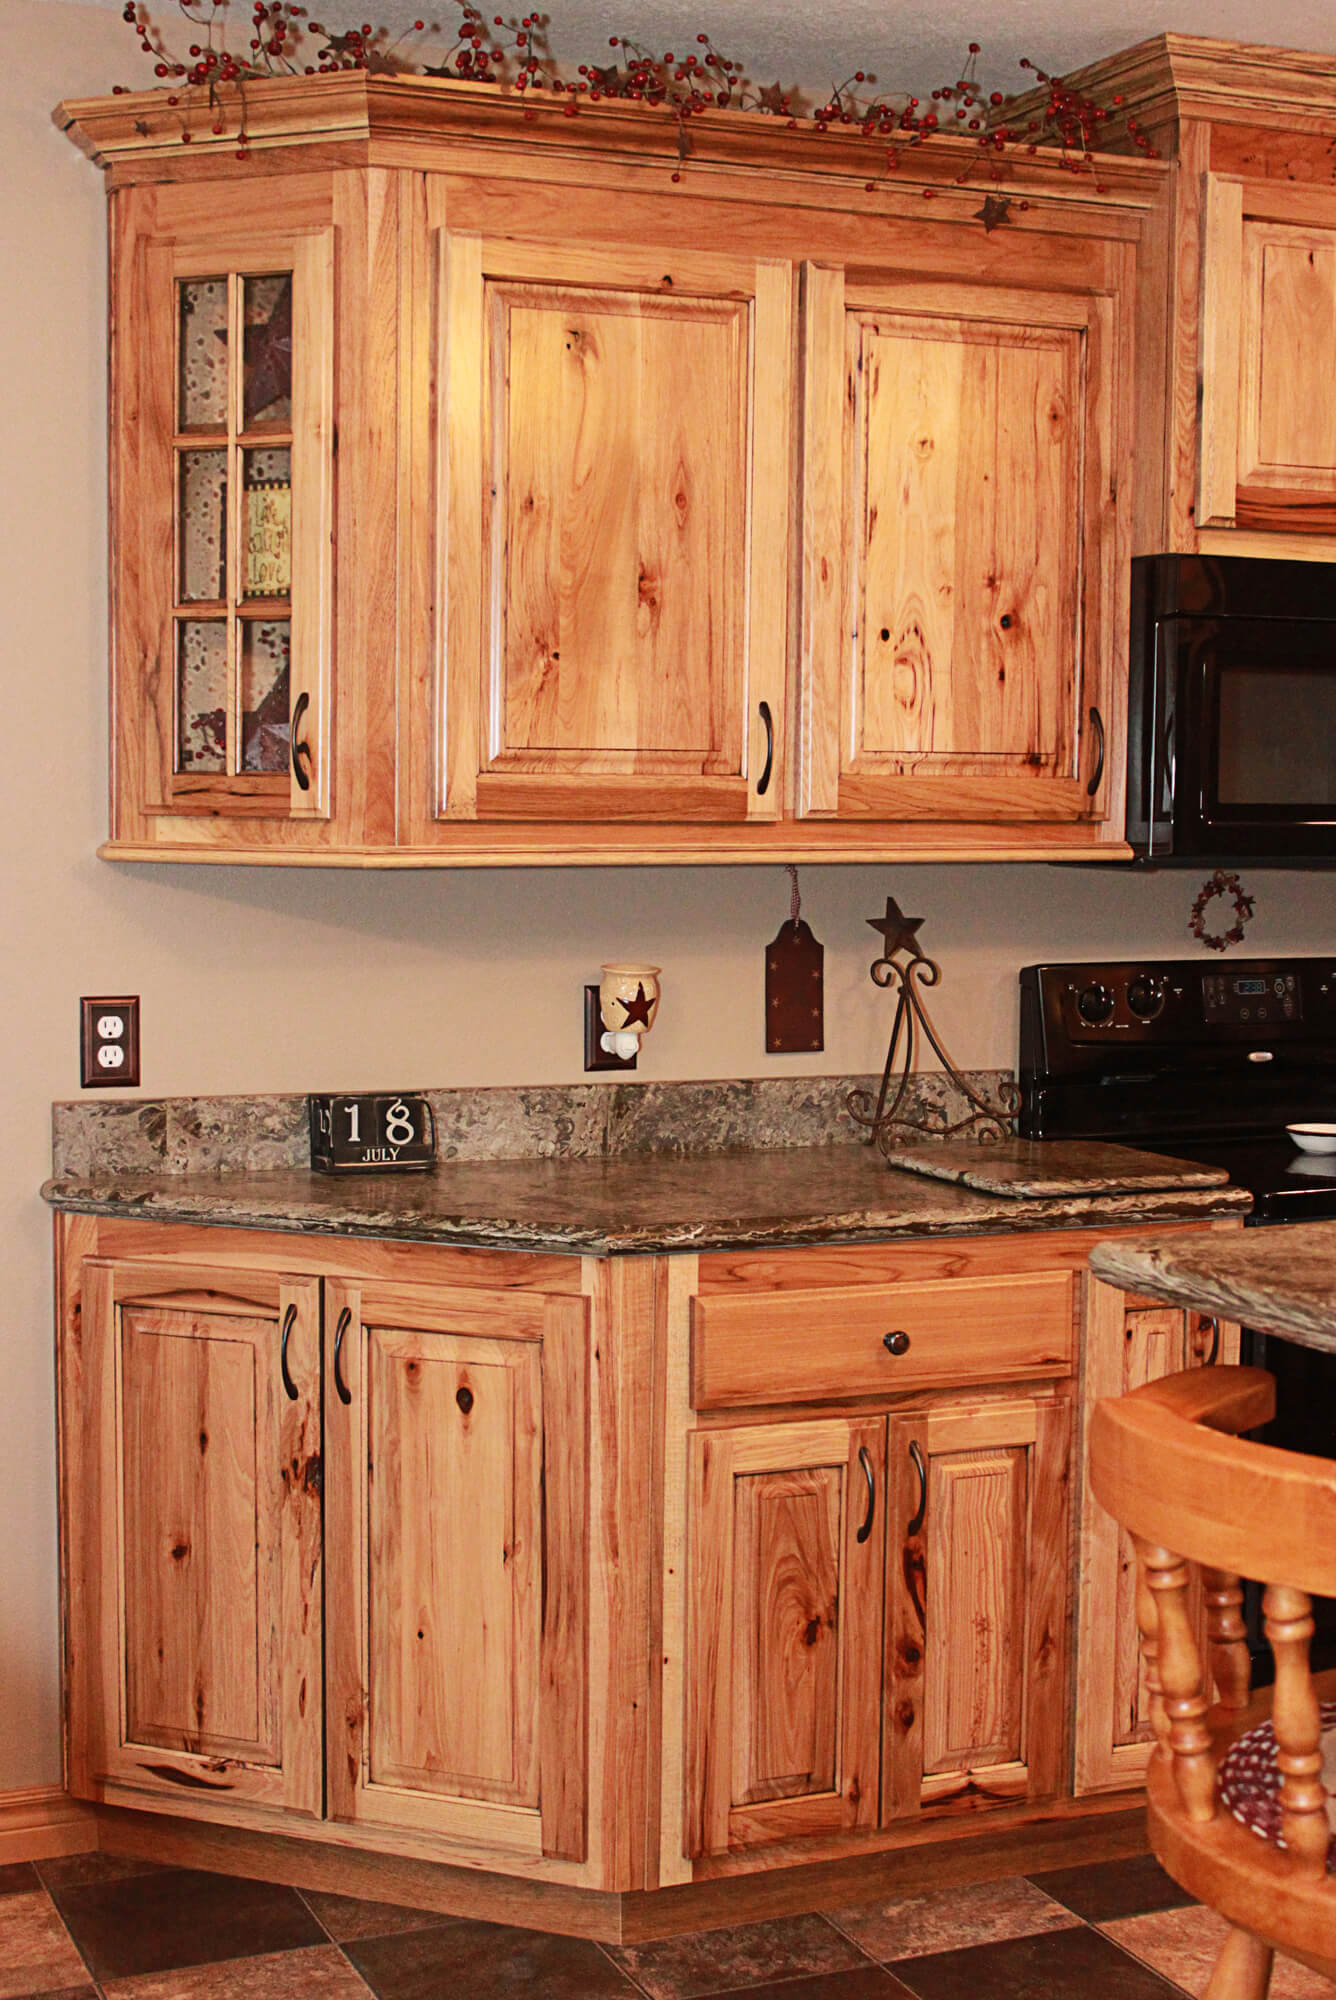 Painting Kitchen Cabinets 2017 Painting Hickory Kitchen Cabinets Having Hickory Kitchen